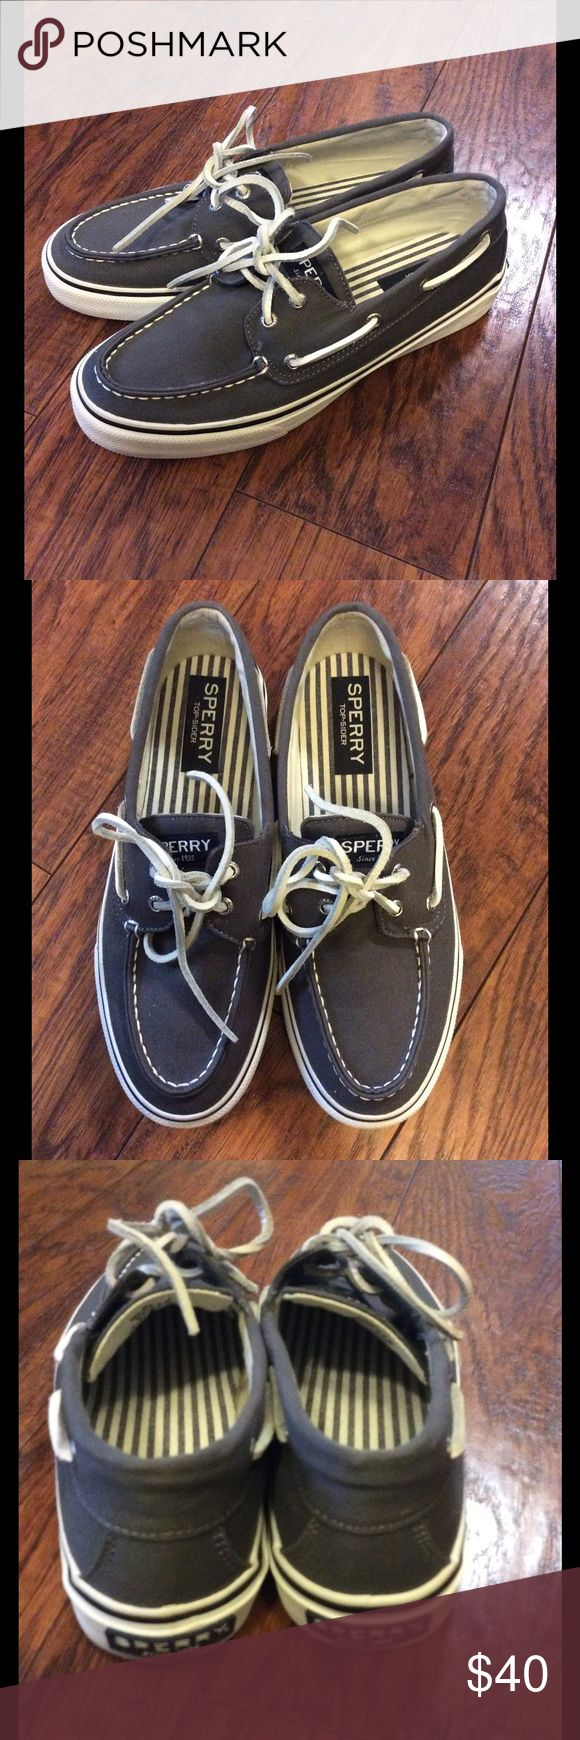 Men's Sperry Top-Siders Men's Sperry Shoes in good condition. Sperry Top-Sider Shoes